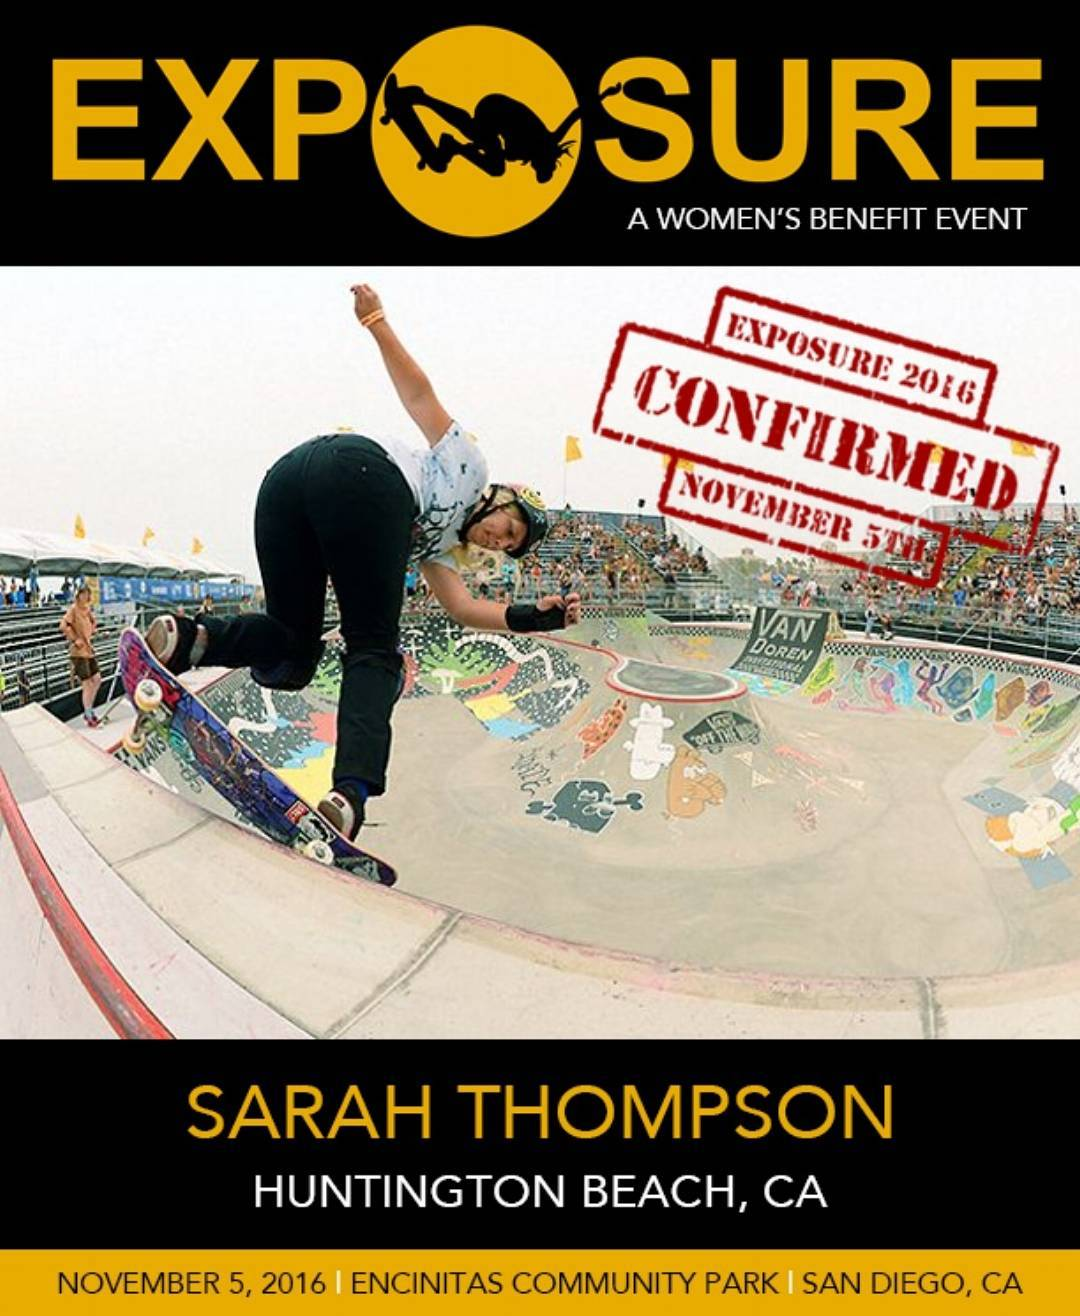 @sarahshreds is gonna get gnarly in our Pro Bowl/Vert competition!! Original photo by @aacosta